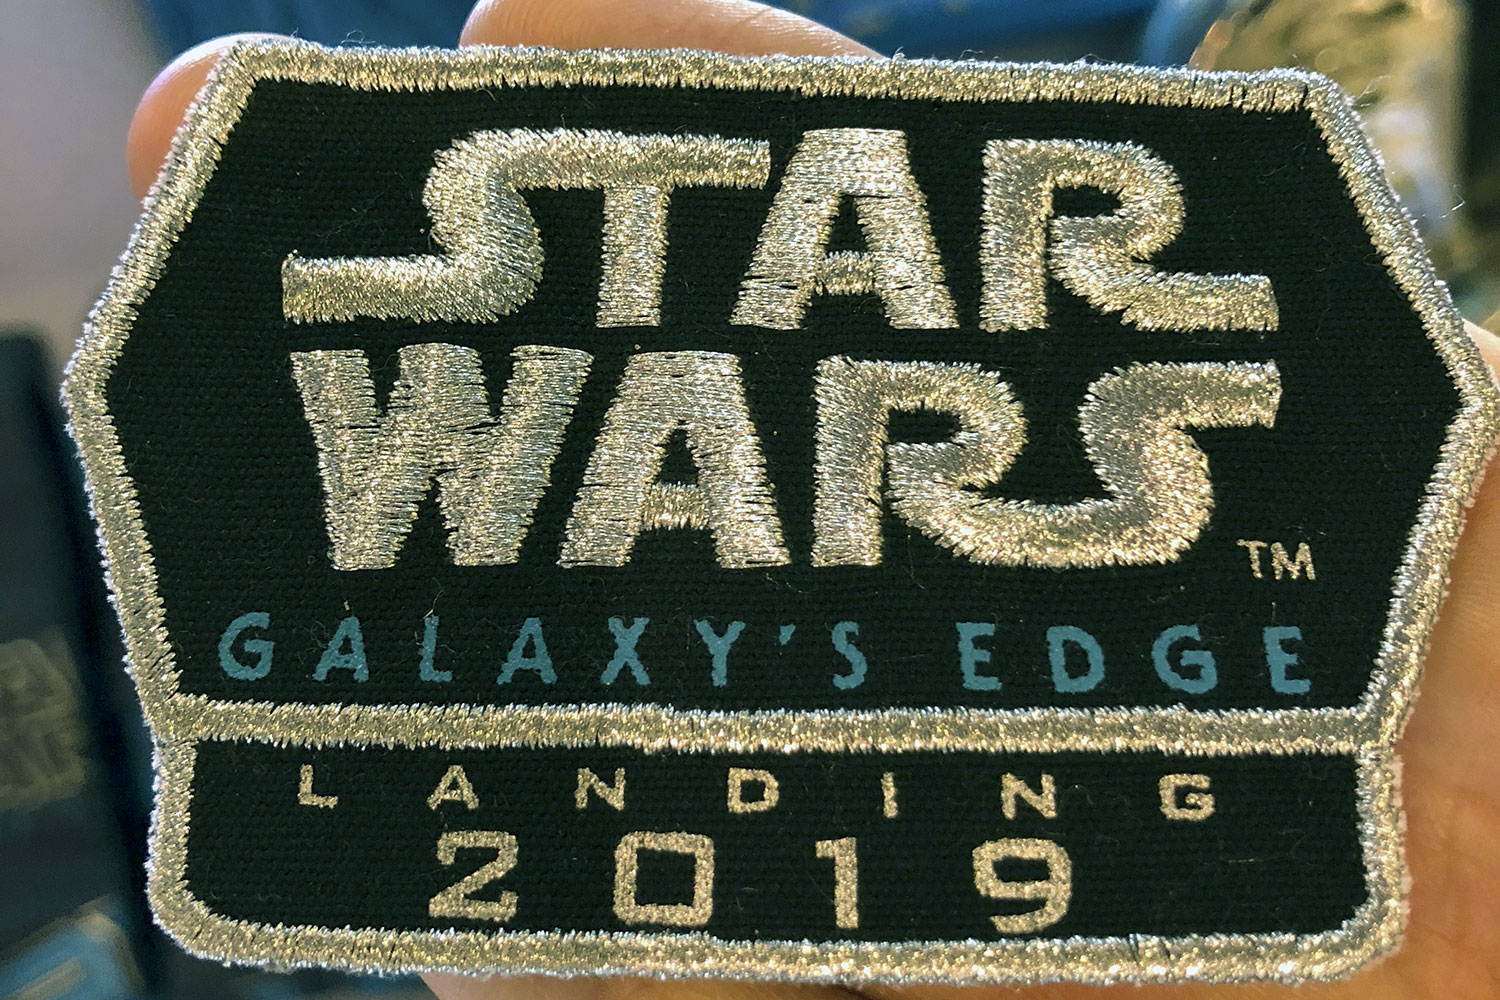 Disneyland's The Last Jedi and Galaxy's Edge Update